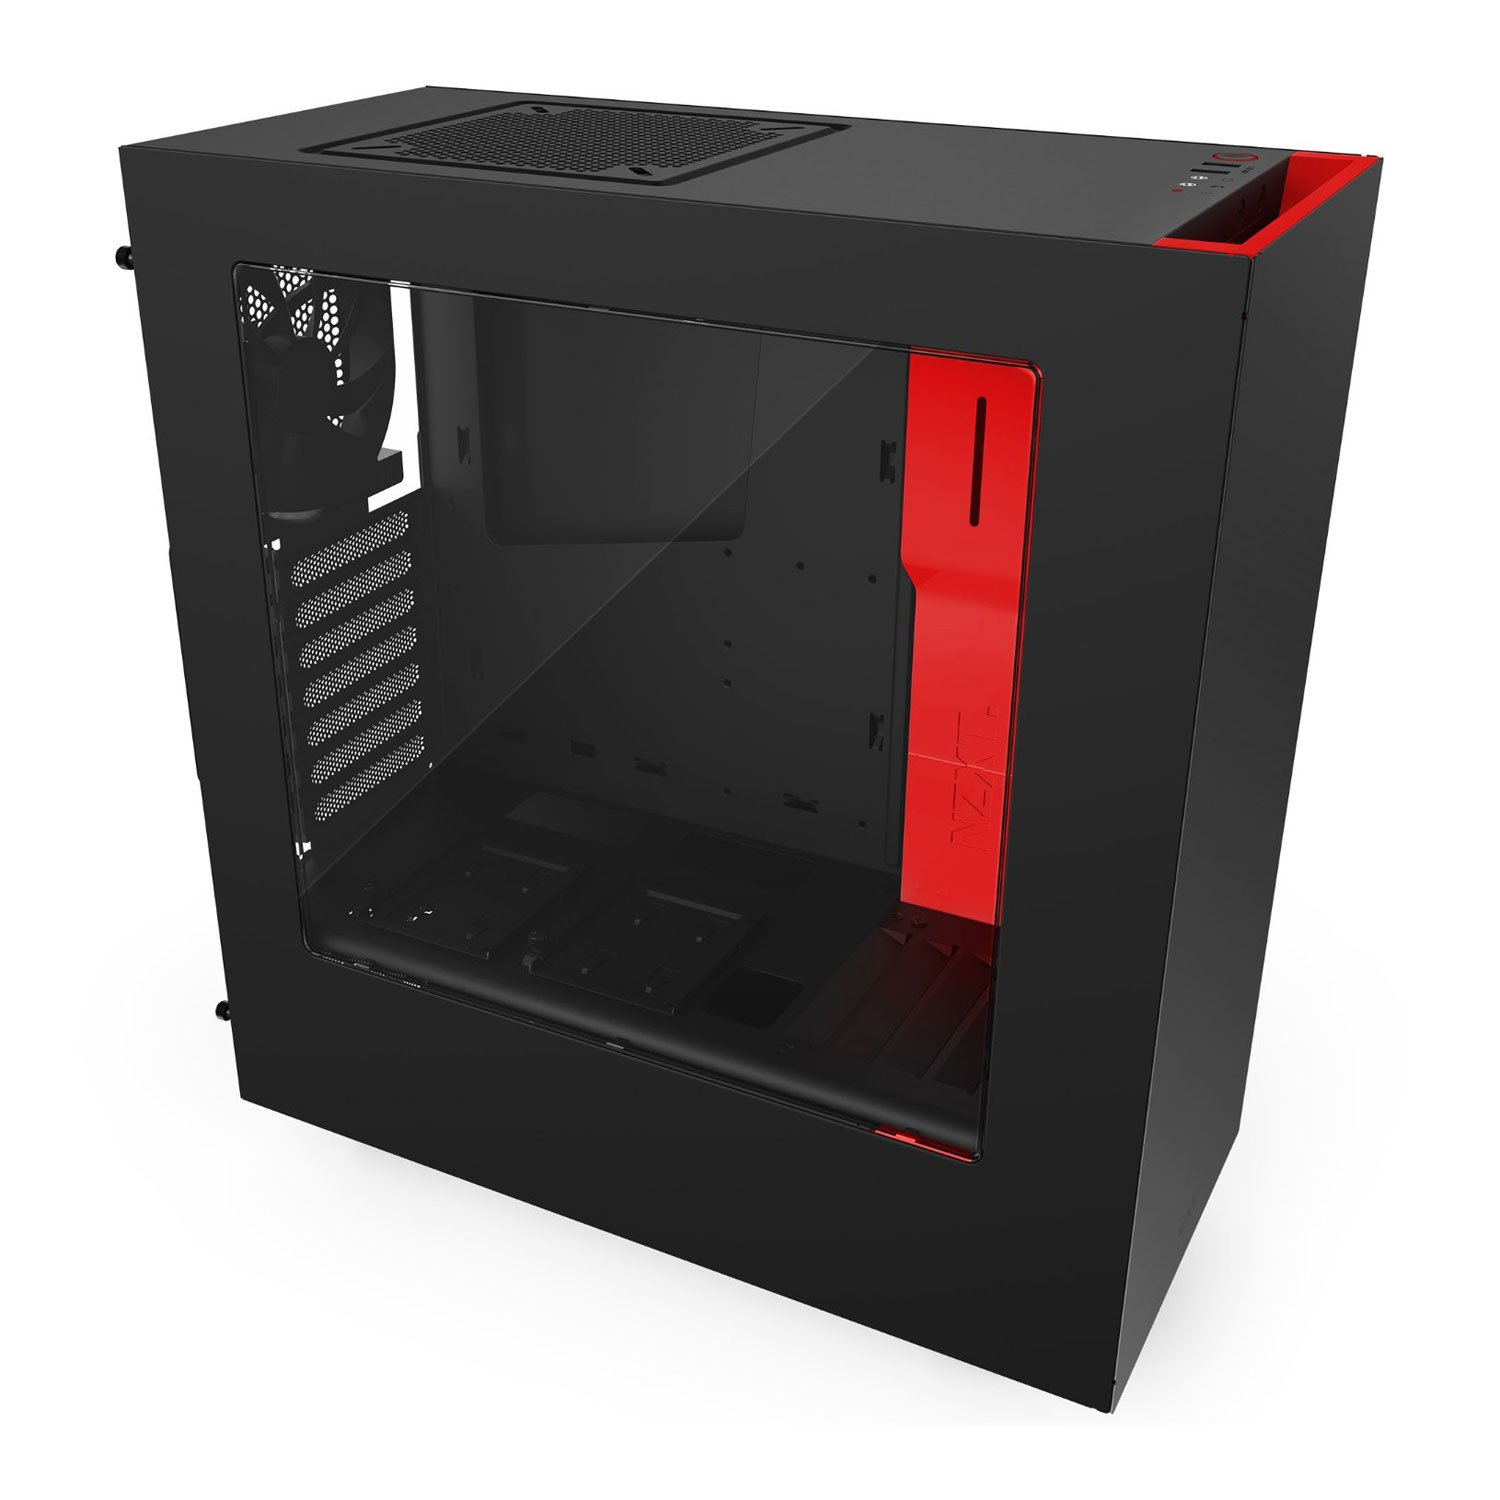 how to open nzxt s340 case